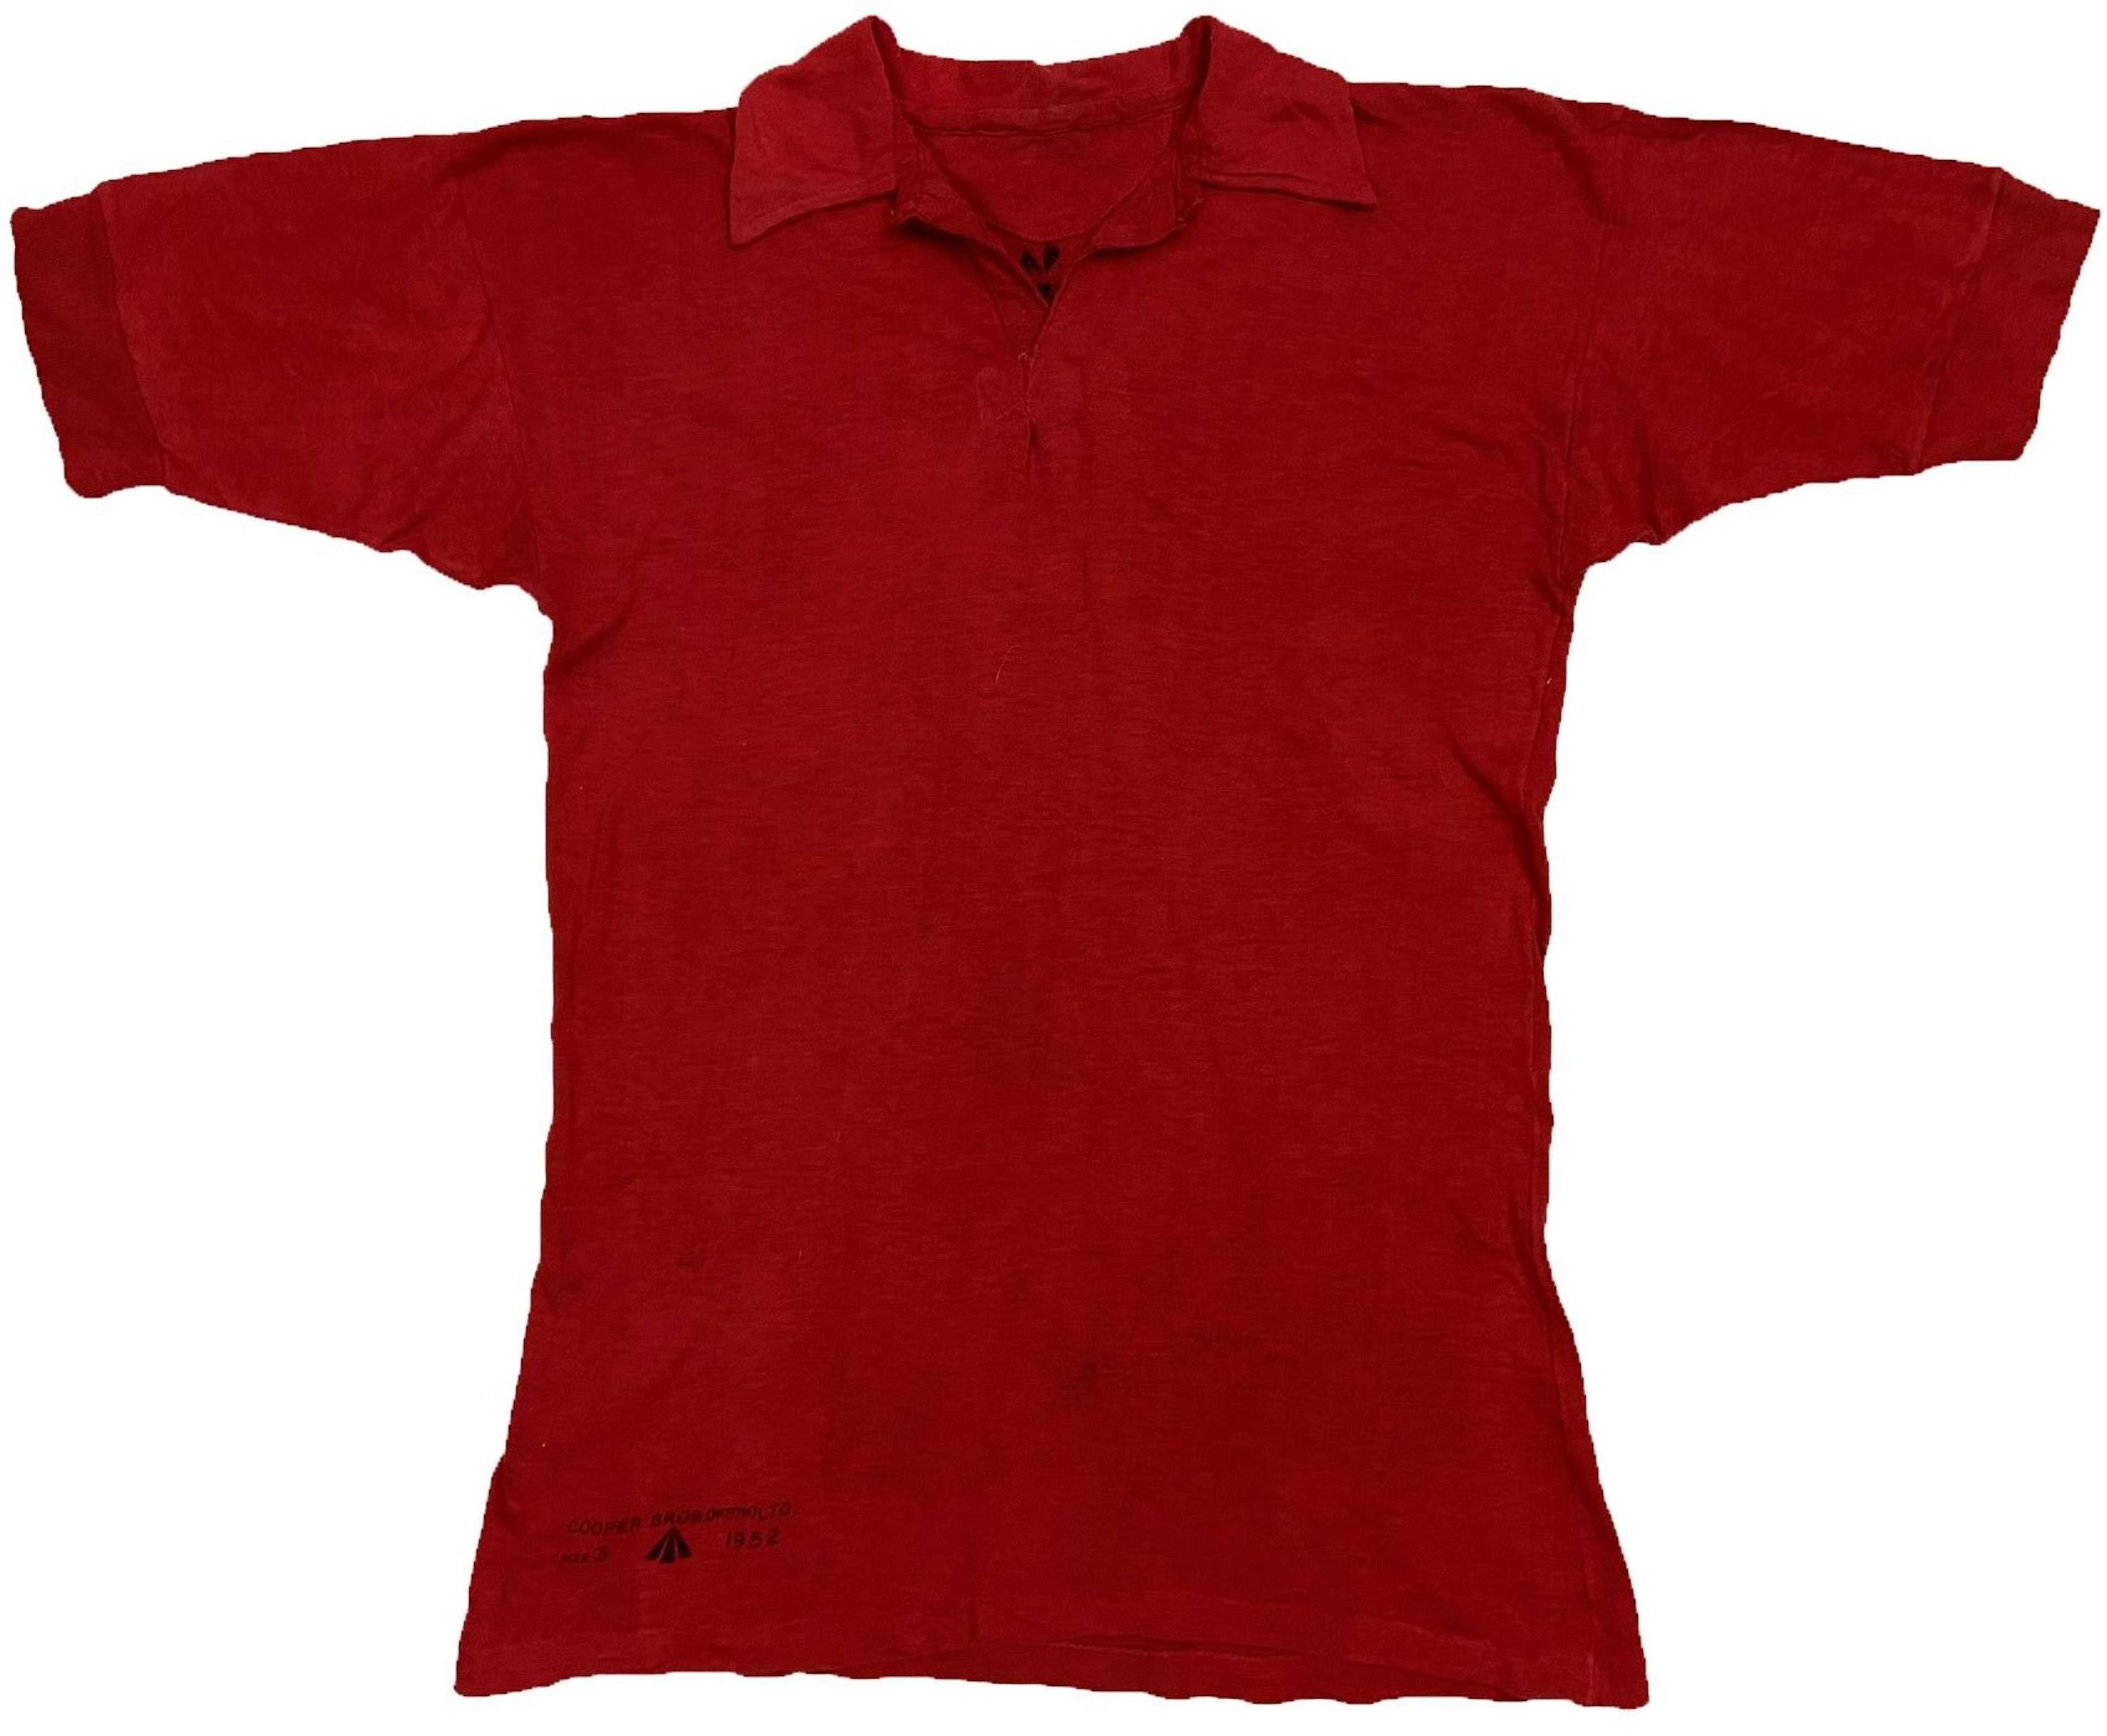 Original 1952 Dated British Army Physical Training Polo Shirt - Size 3